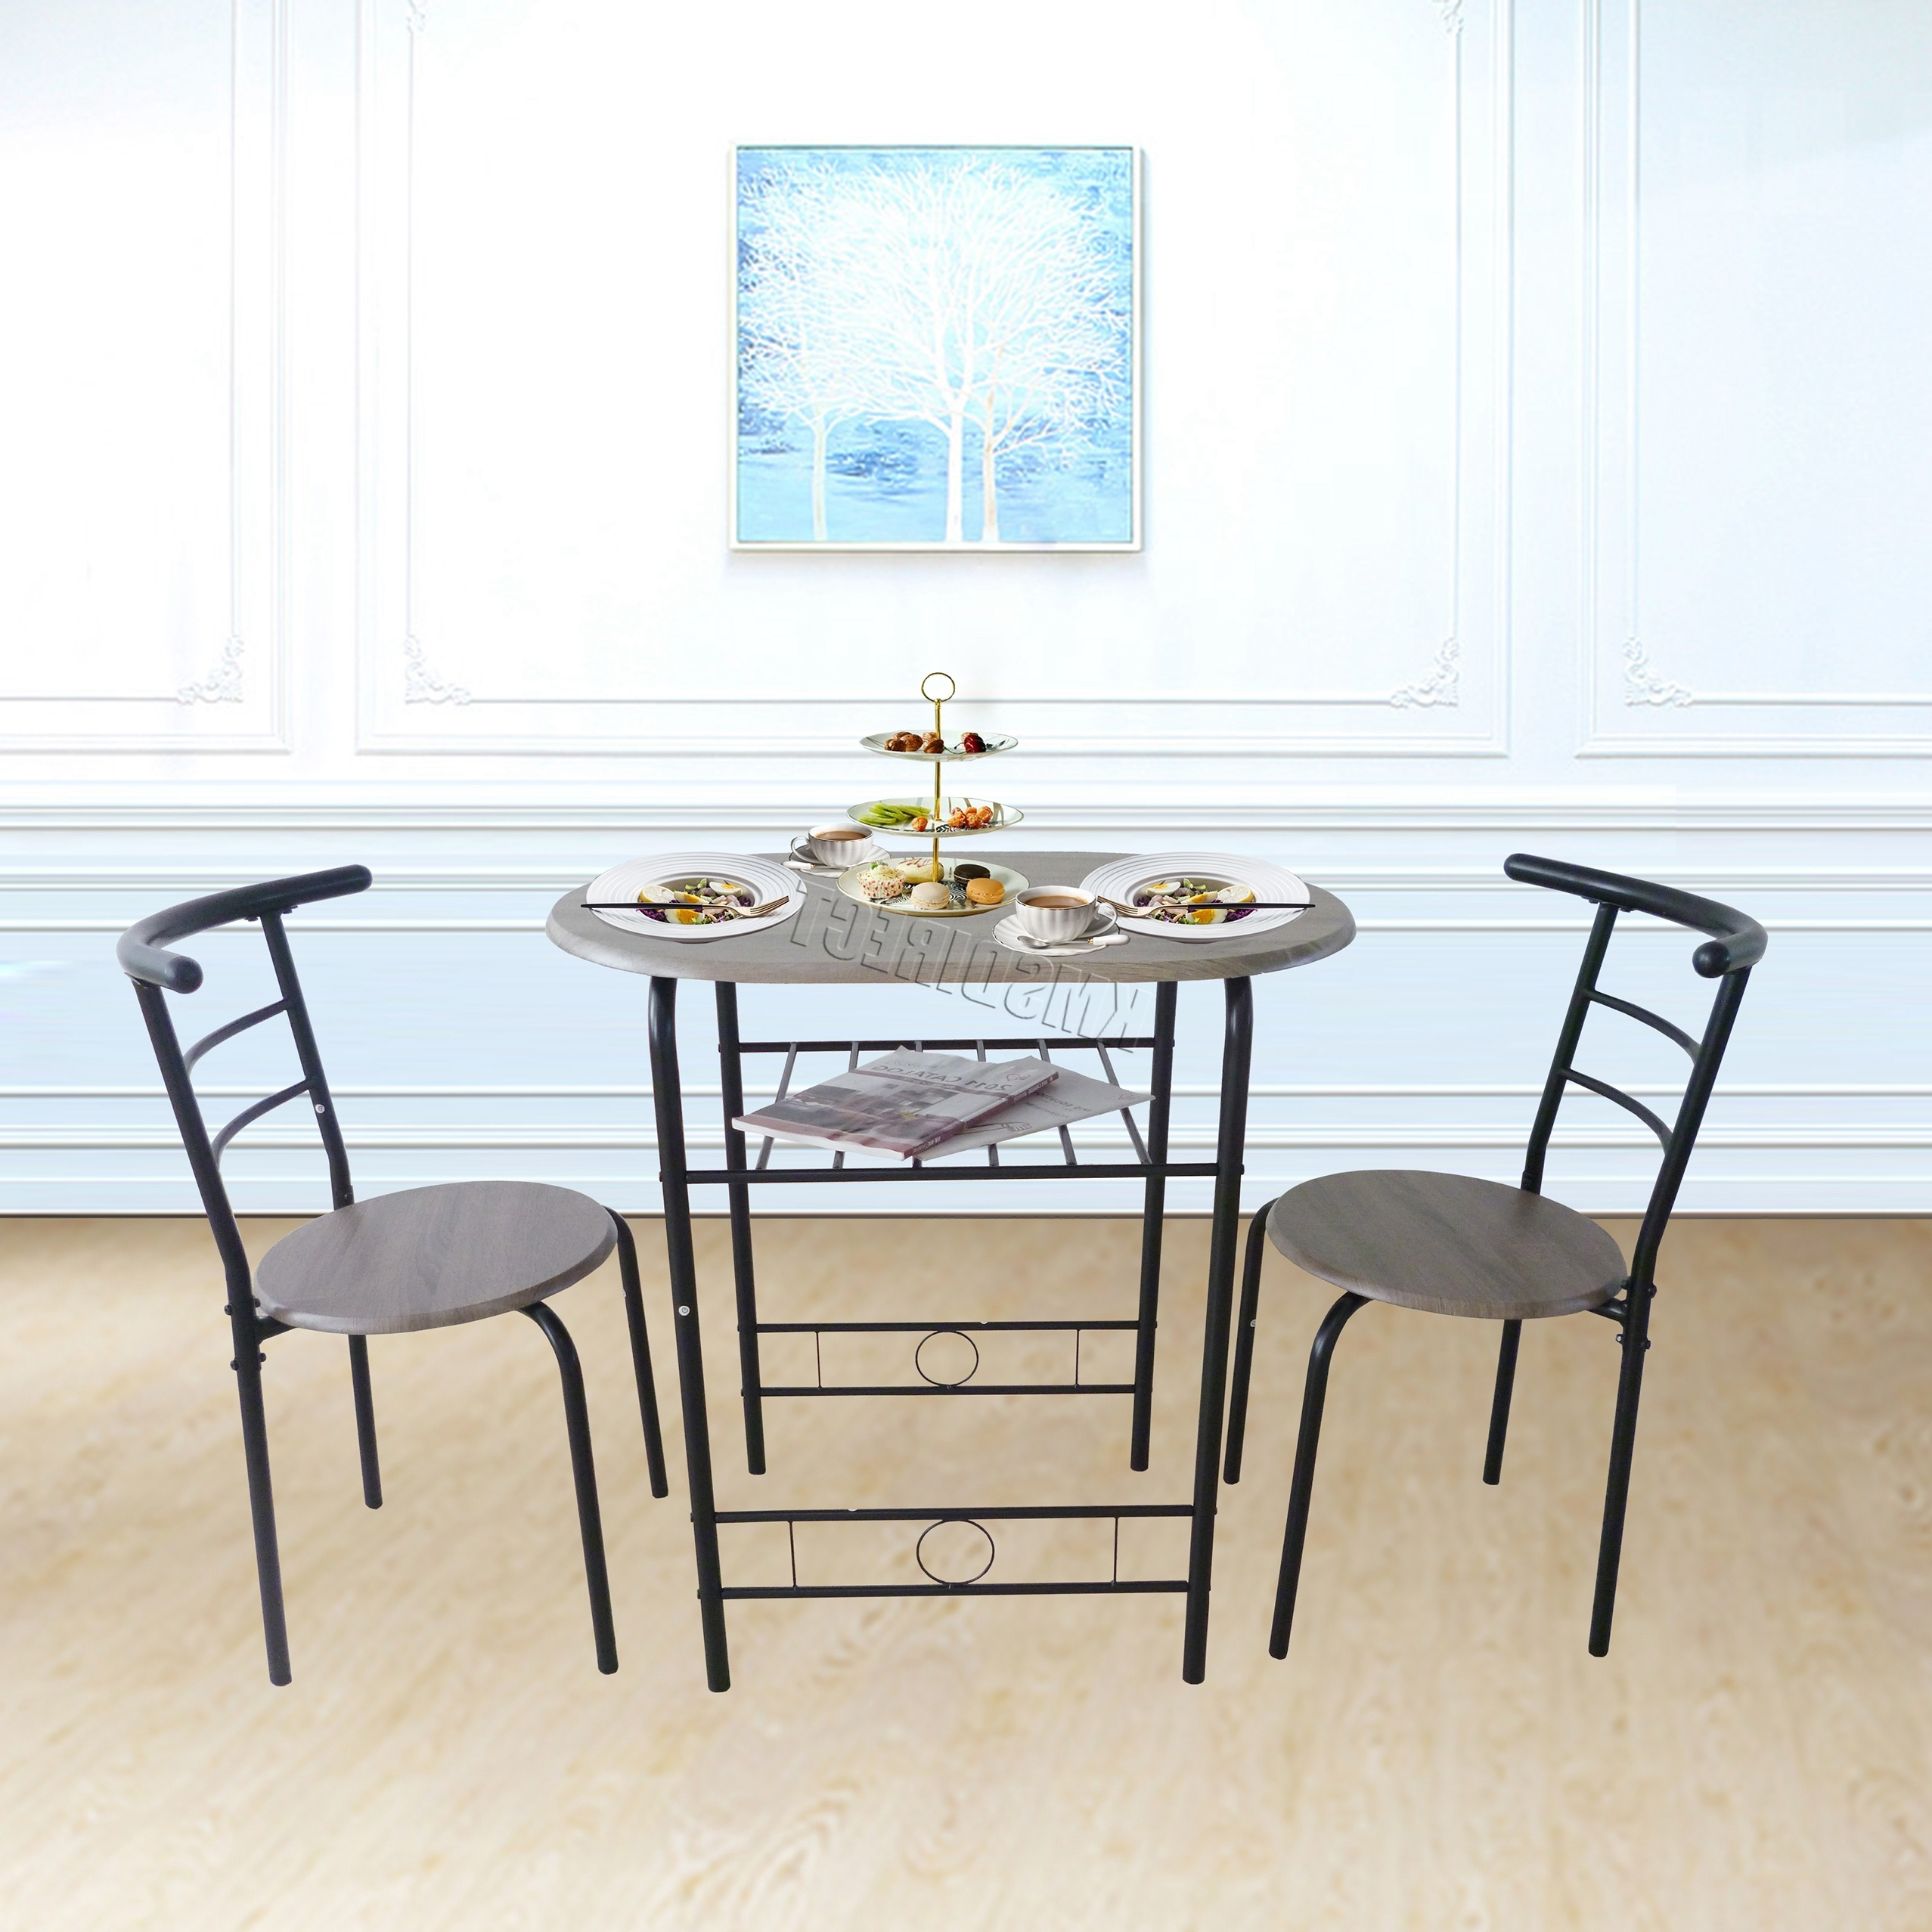 Westwood Compact Dining Table Breakfast Bar 2 Chair Set Metal Mdf Regarding Most Popular Compact Dining Room Sets (View 24 of 25)